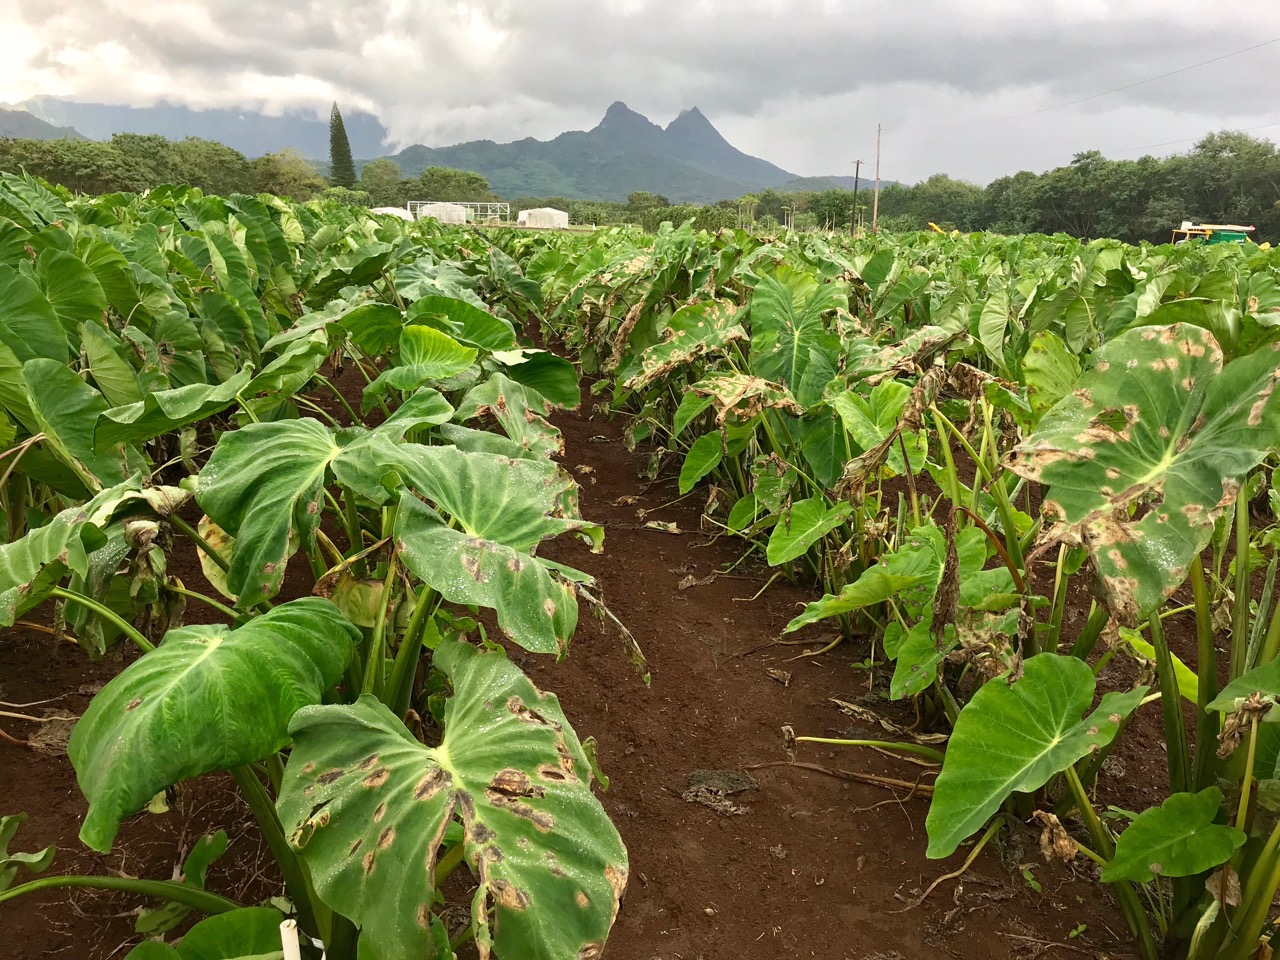 Photo: University of Hawaii Taro Germ plasm collection 2 weeks before March 2018 Taro Field Day event. (photo credit: Jari S. ext. agent).